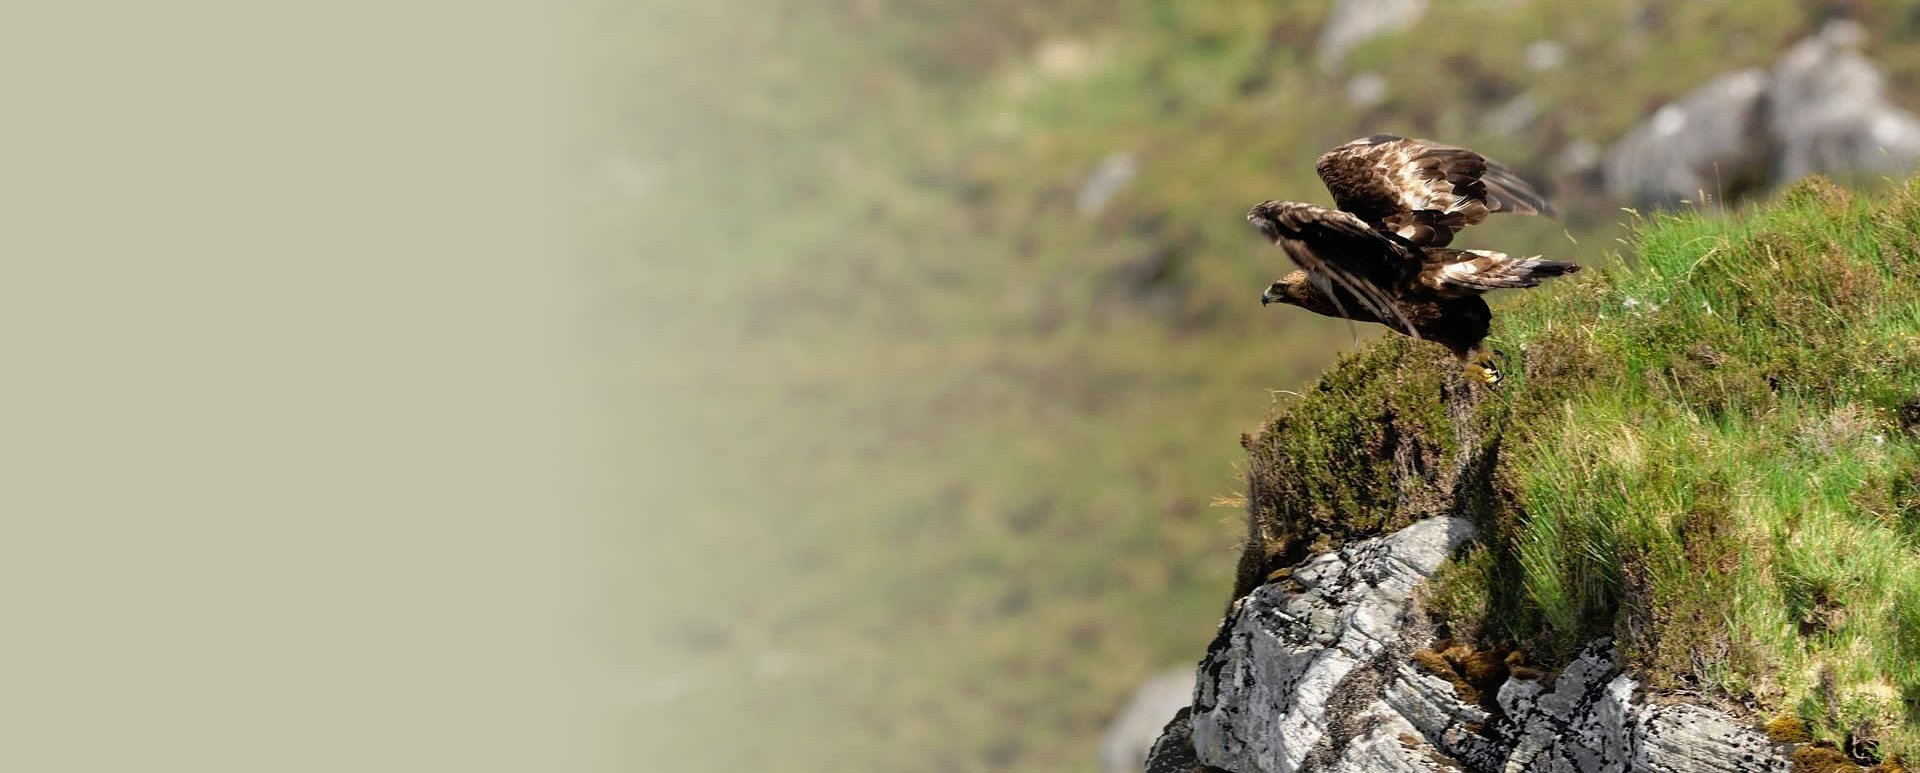 South Scotland Reintroducing Golden Eagles